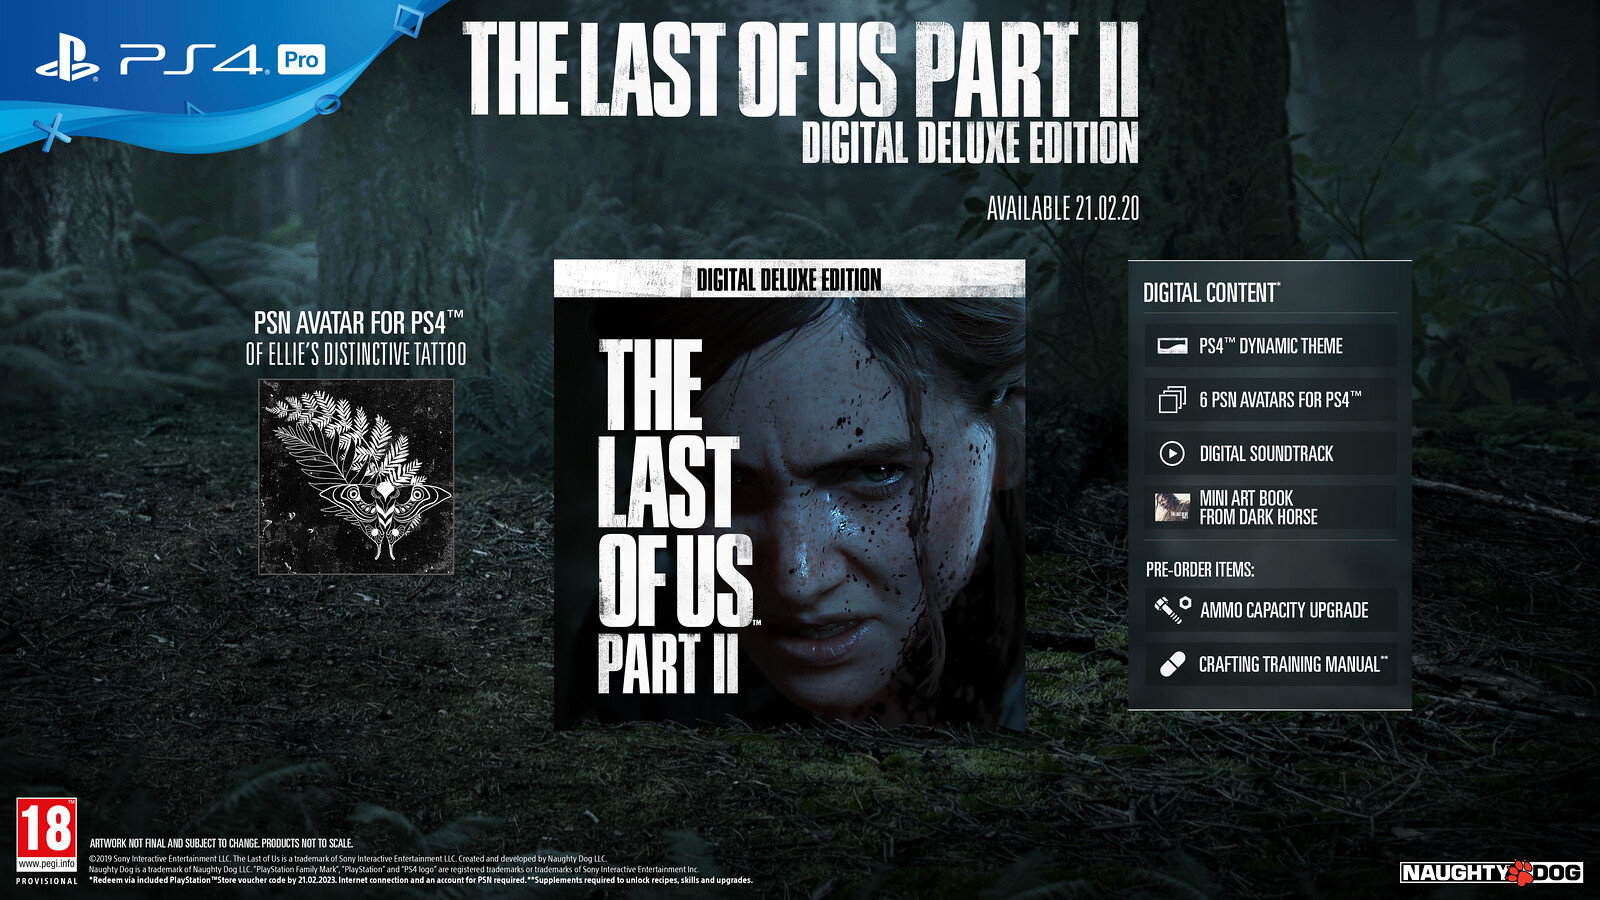 The Last of Us Part 2 – Digital Deluxe Edition